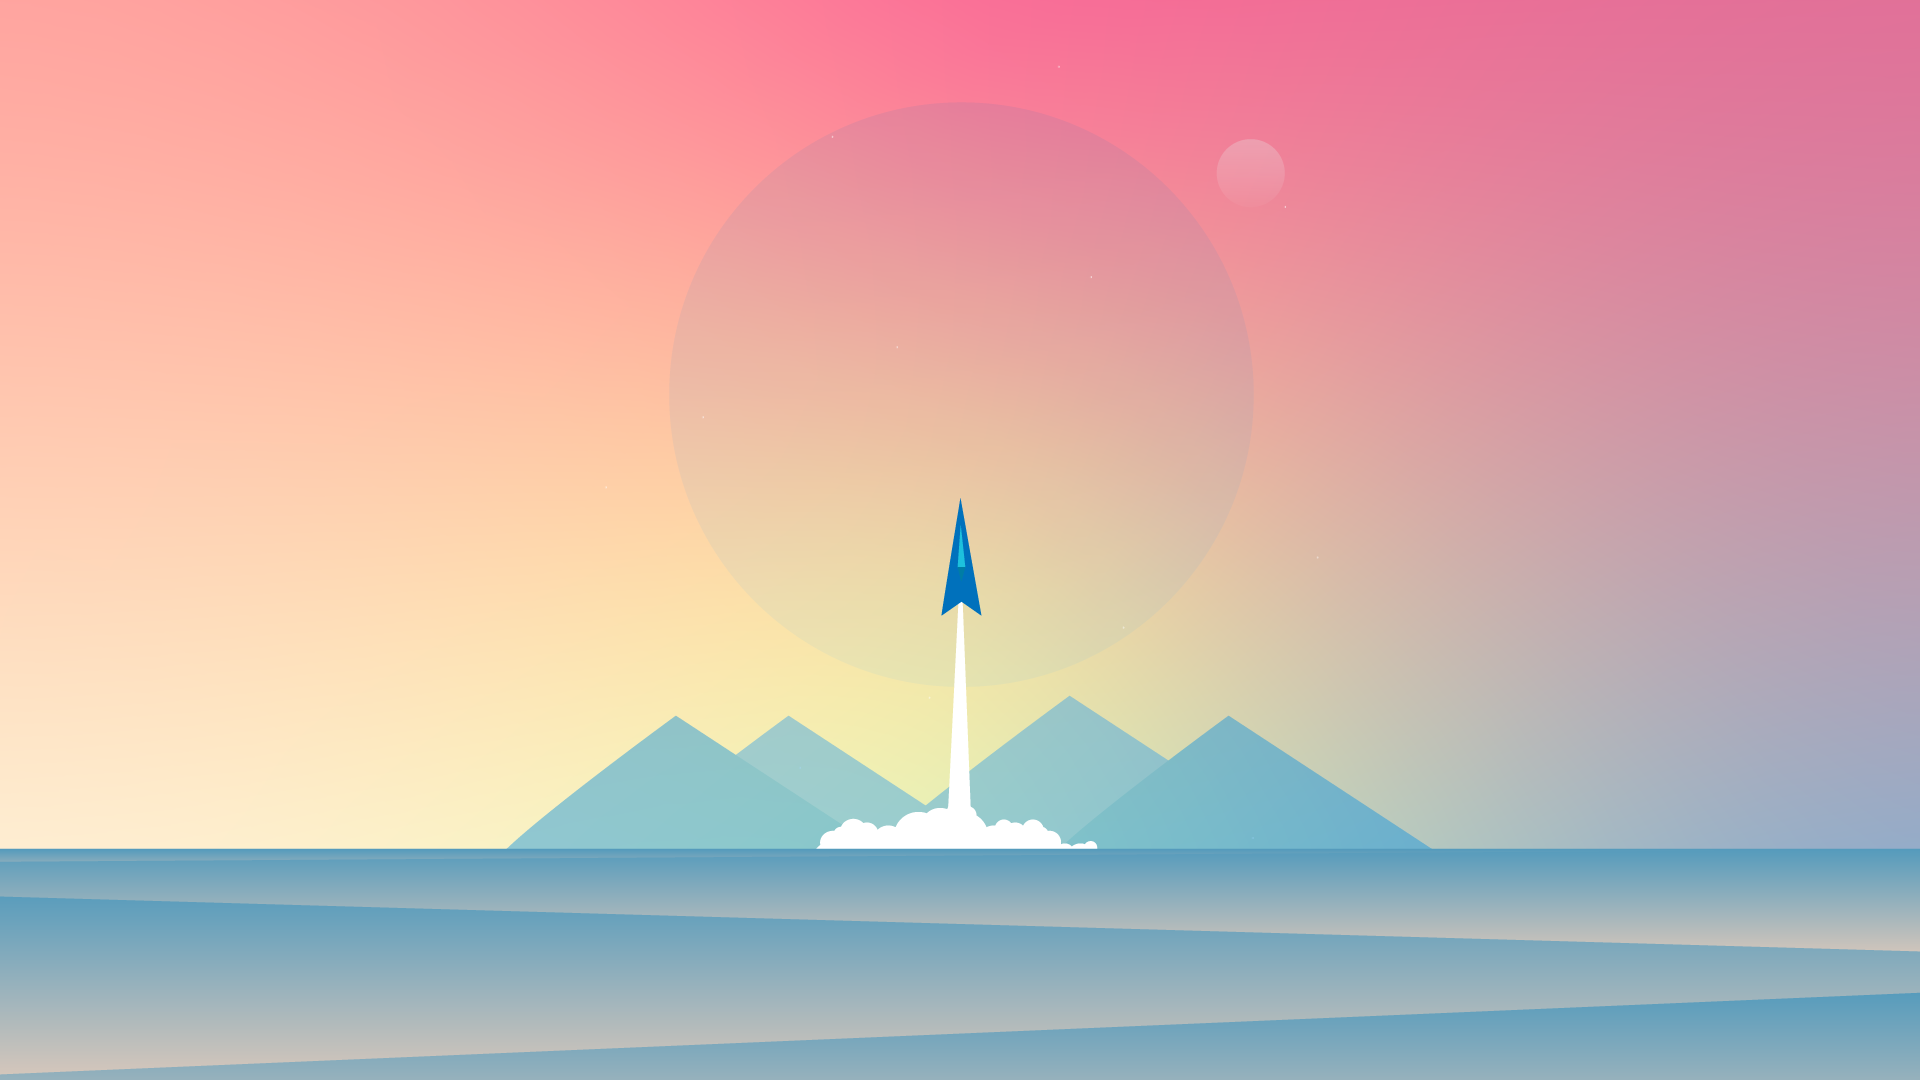 cool desktop wallpaper 4k minimalistic rocket launch